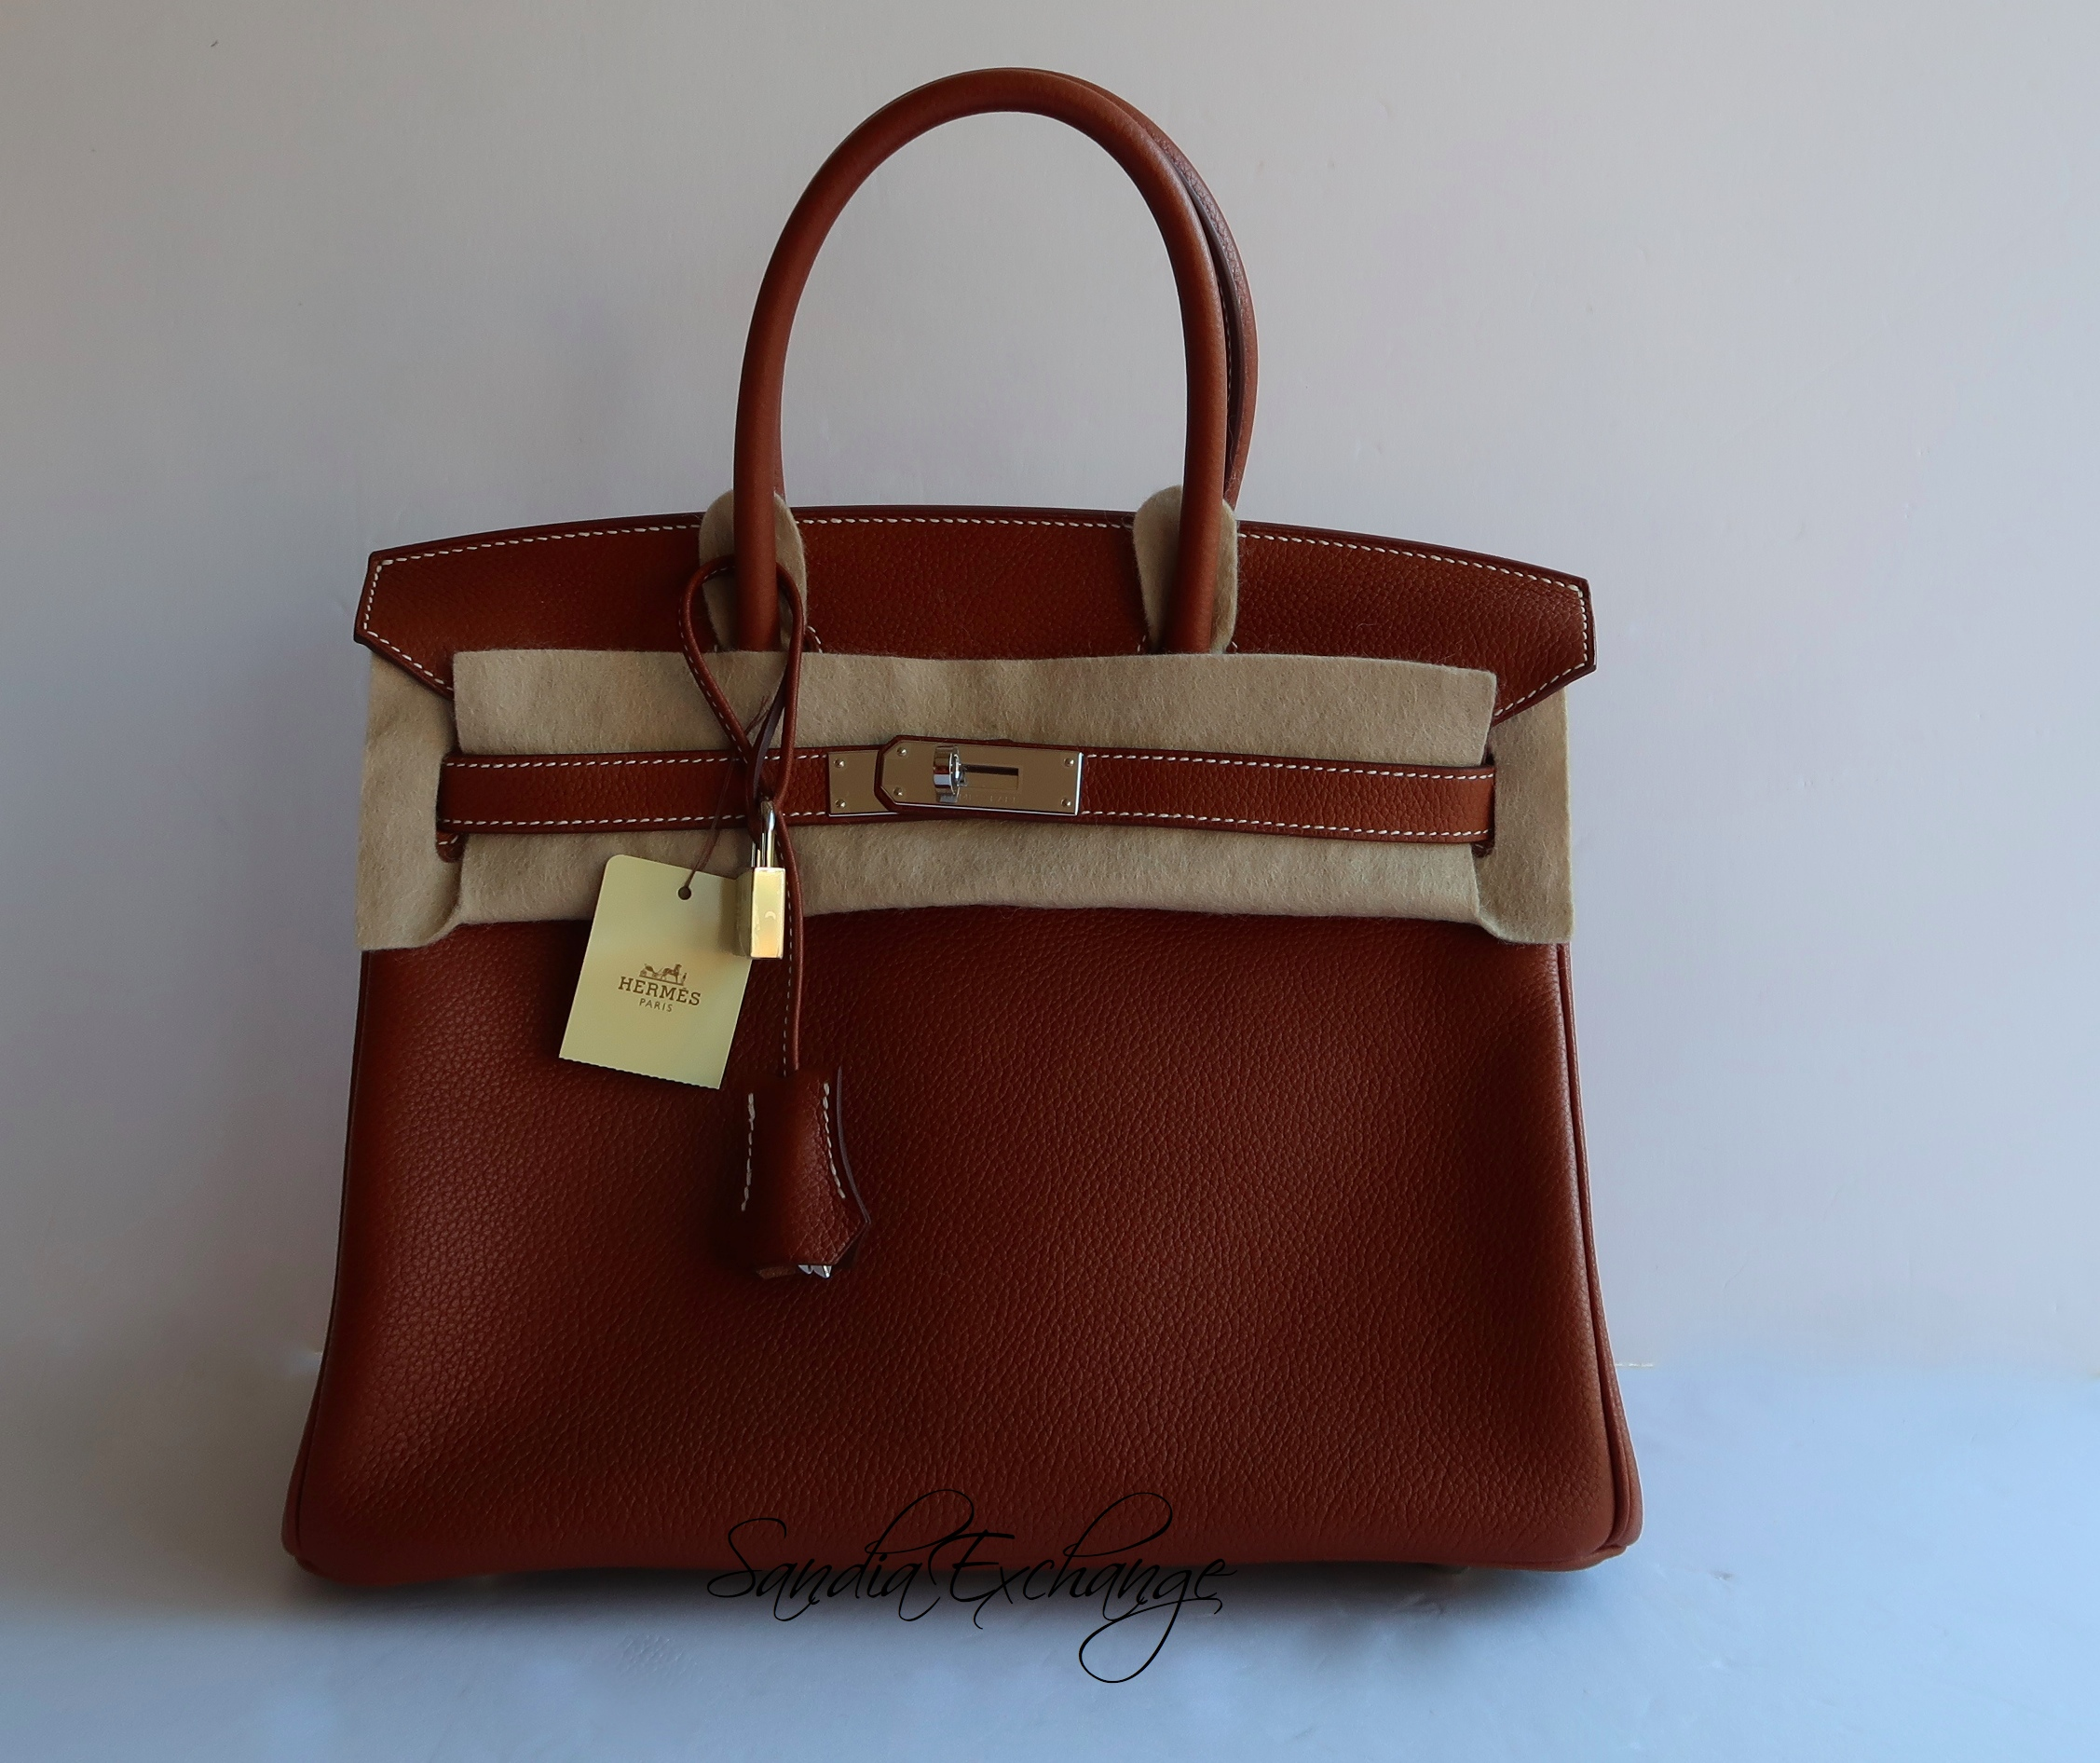 85240d0abf NEW HERMES Birkin 30 cm Faubourg Barenia Palladium Hardware Limited Ed  Authentic